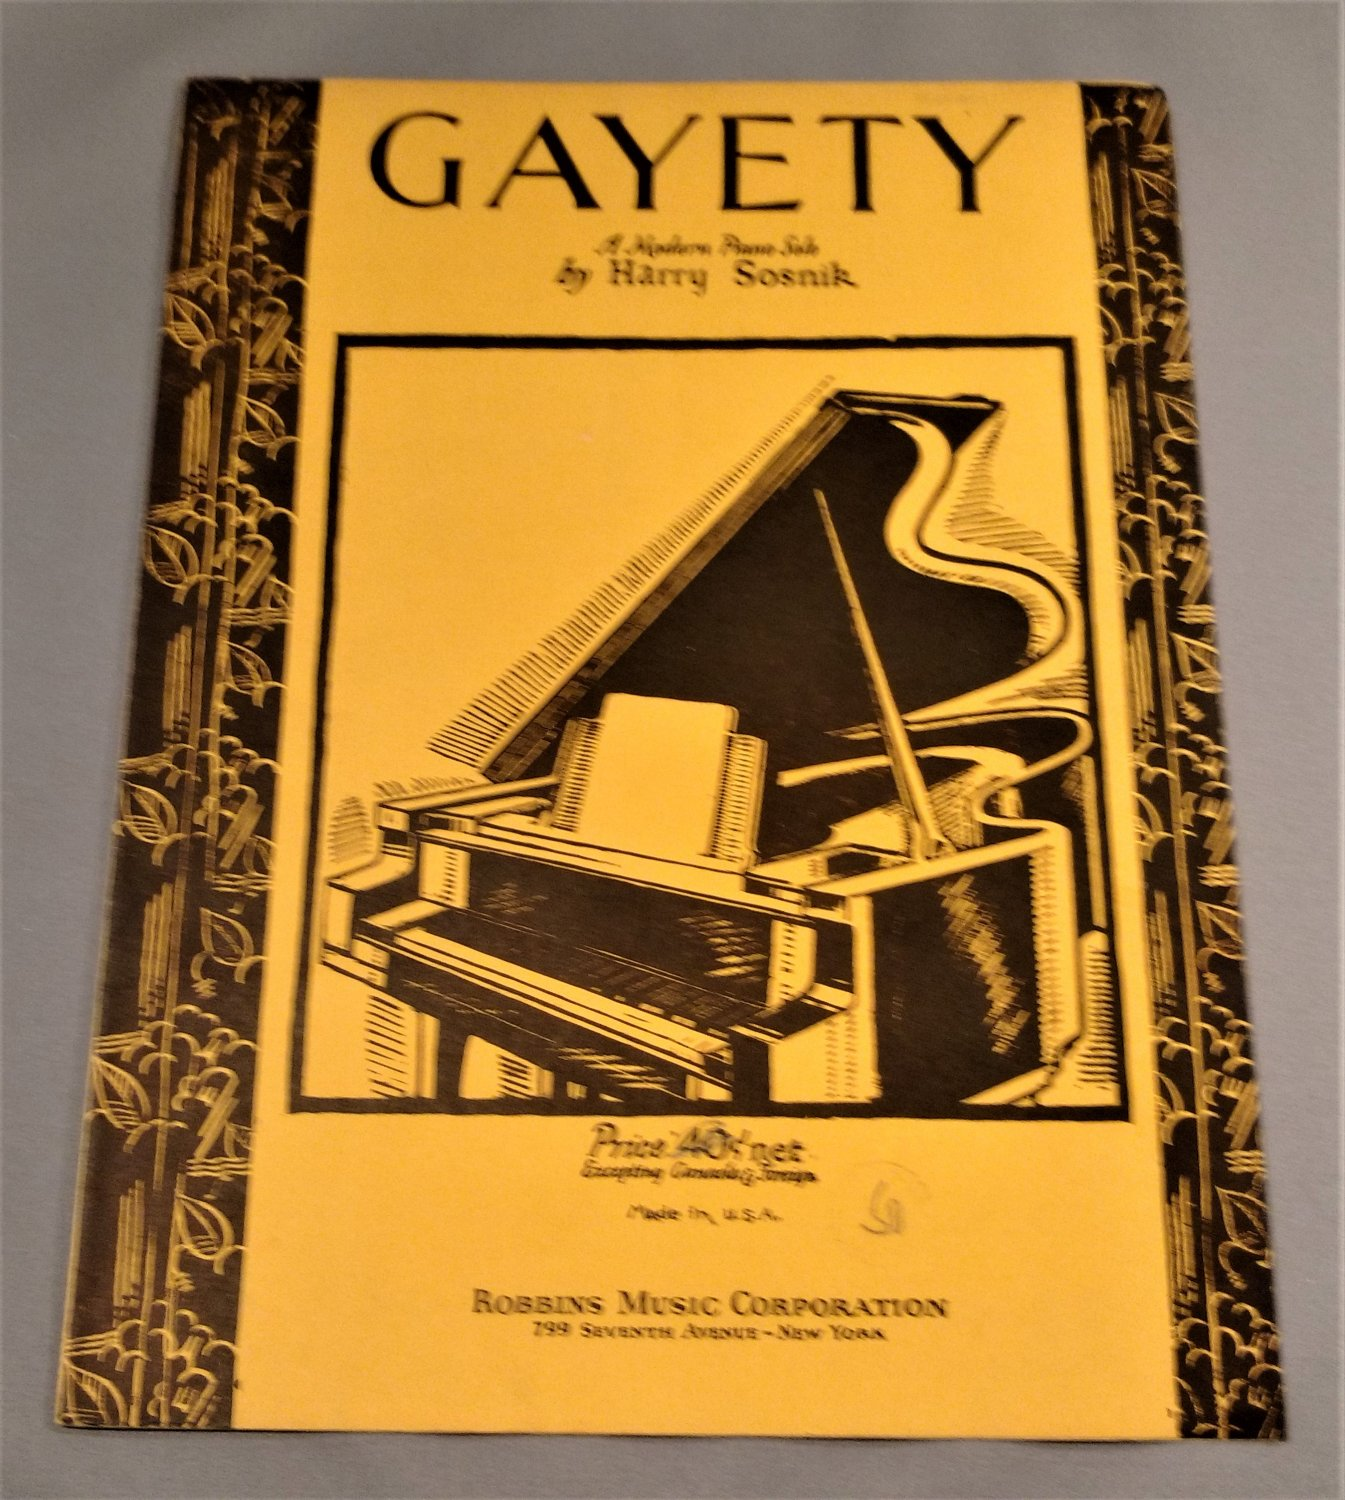 GAYETY Piano Solo Sheet Music by Harry Sosnik and D. Savino © 1935